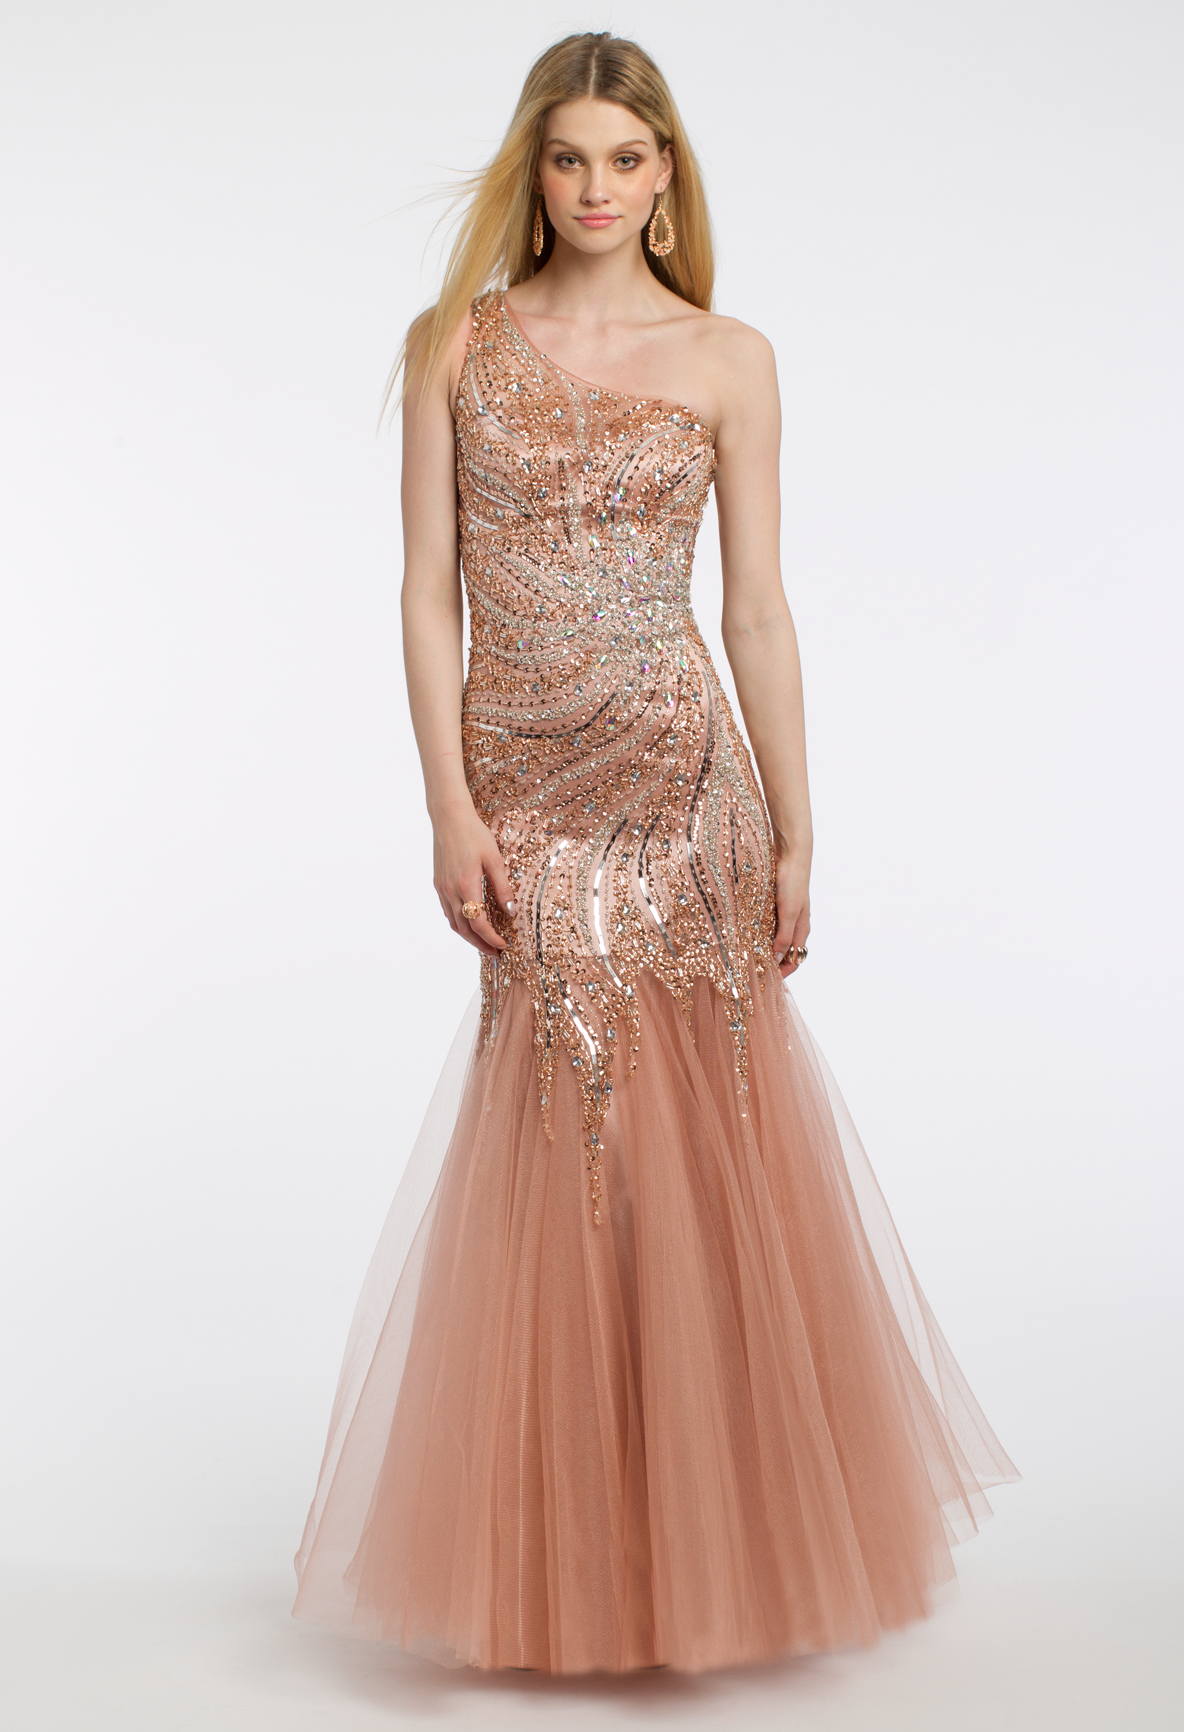 Long dresses to wear to a wedding  Sequin Beaded Tulle Dress  Mesh skirt Prom and Bodice